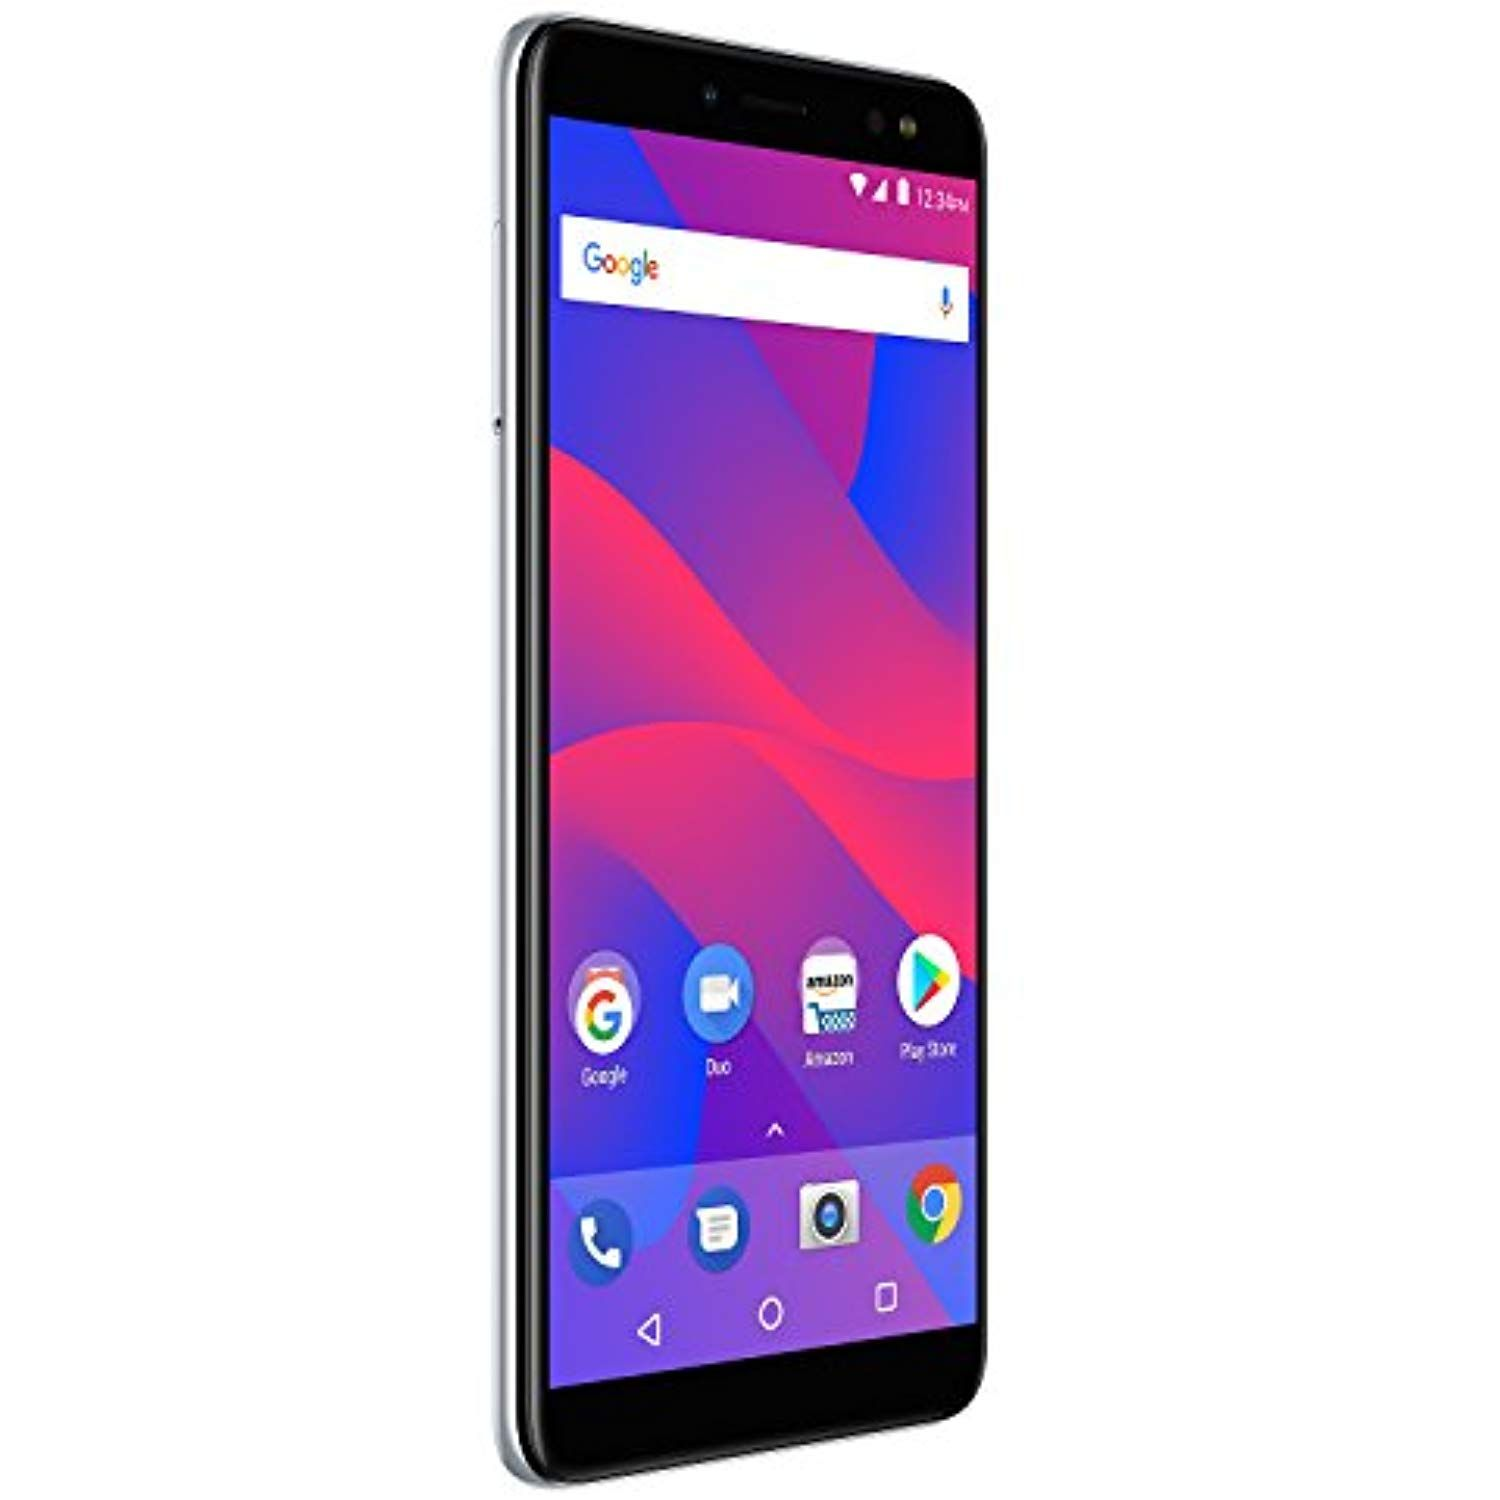 BLU Vivo XL3-5 5†HD 18:9 Display Smartphone with Android